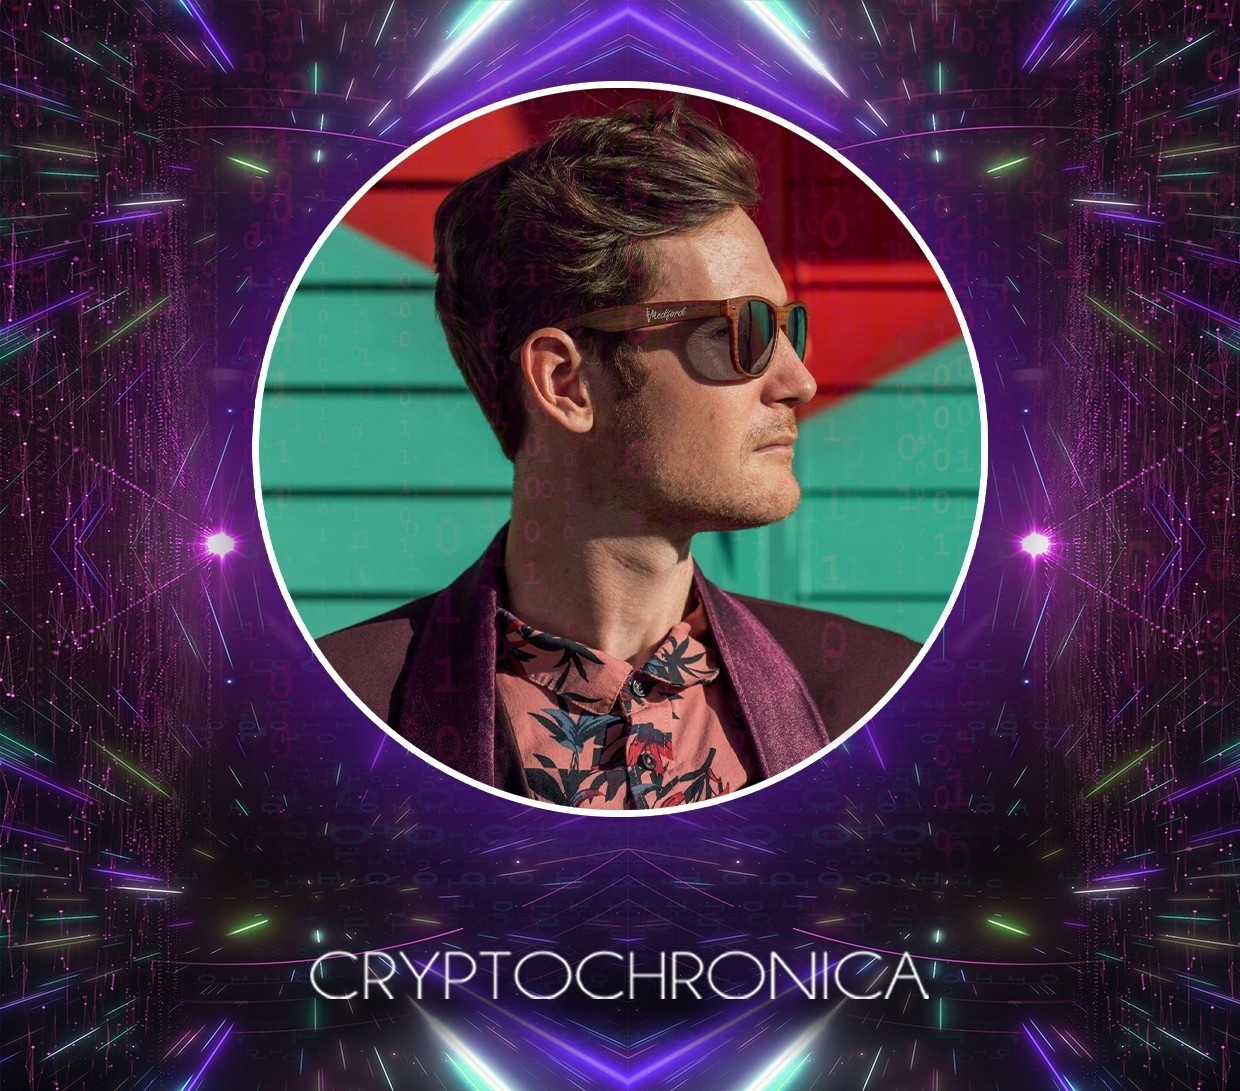 Music production lessons with Cryptochronica at the Producer Dojo music label.